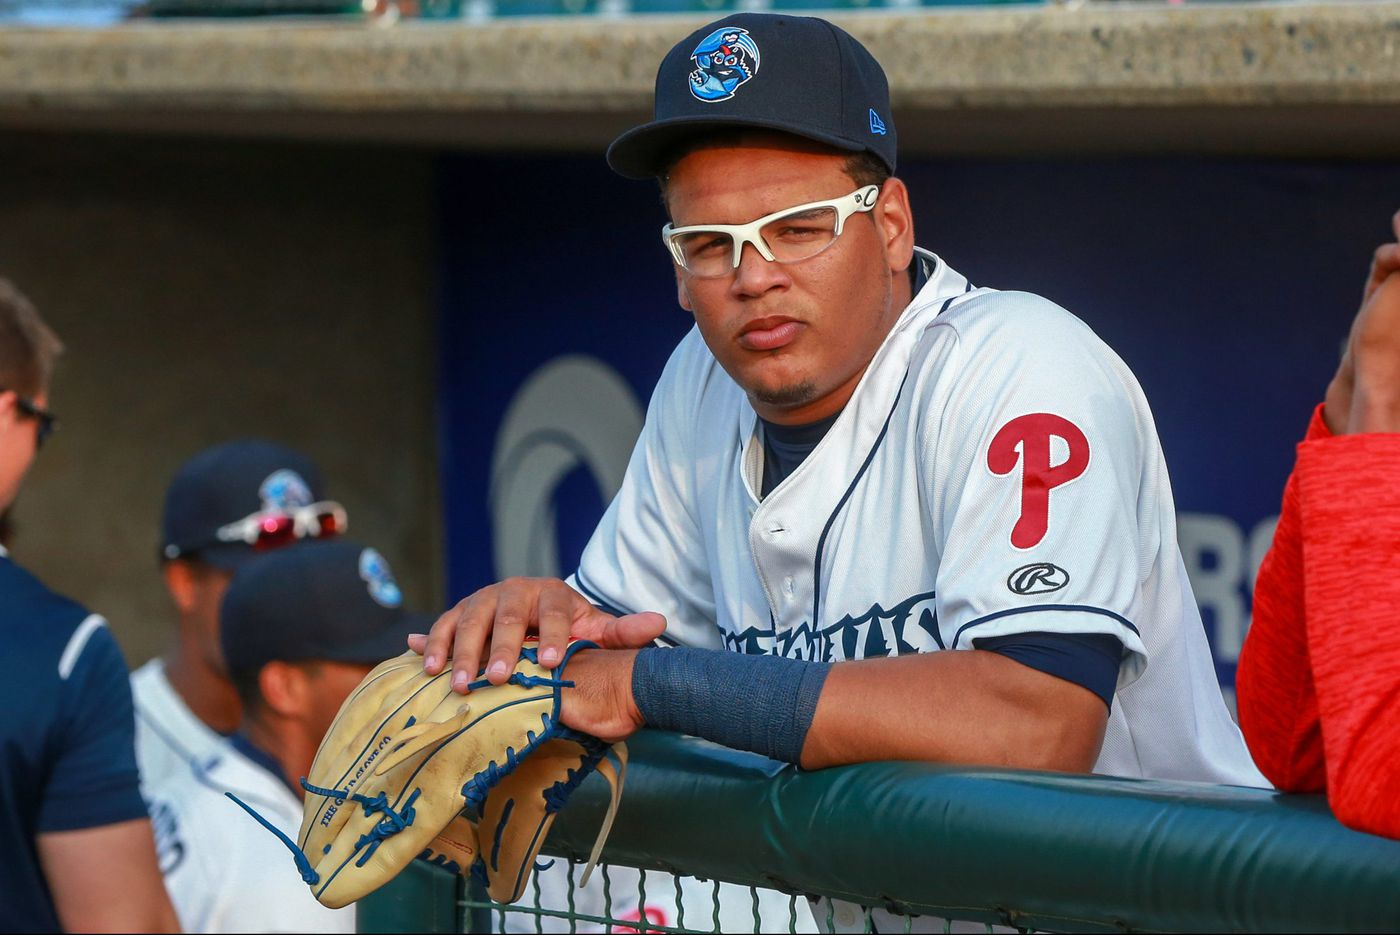 Phillies prospect Jhailyn Ortiz turns on power after difficult start